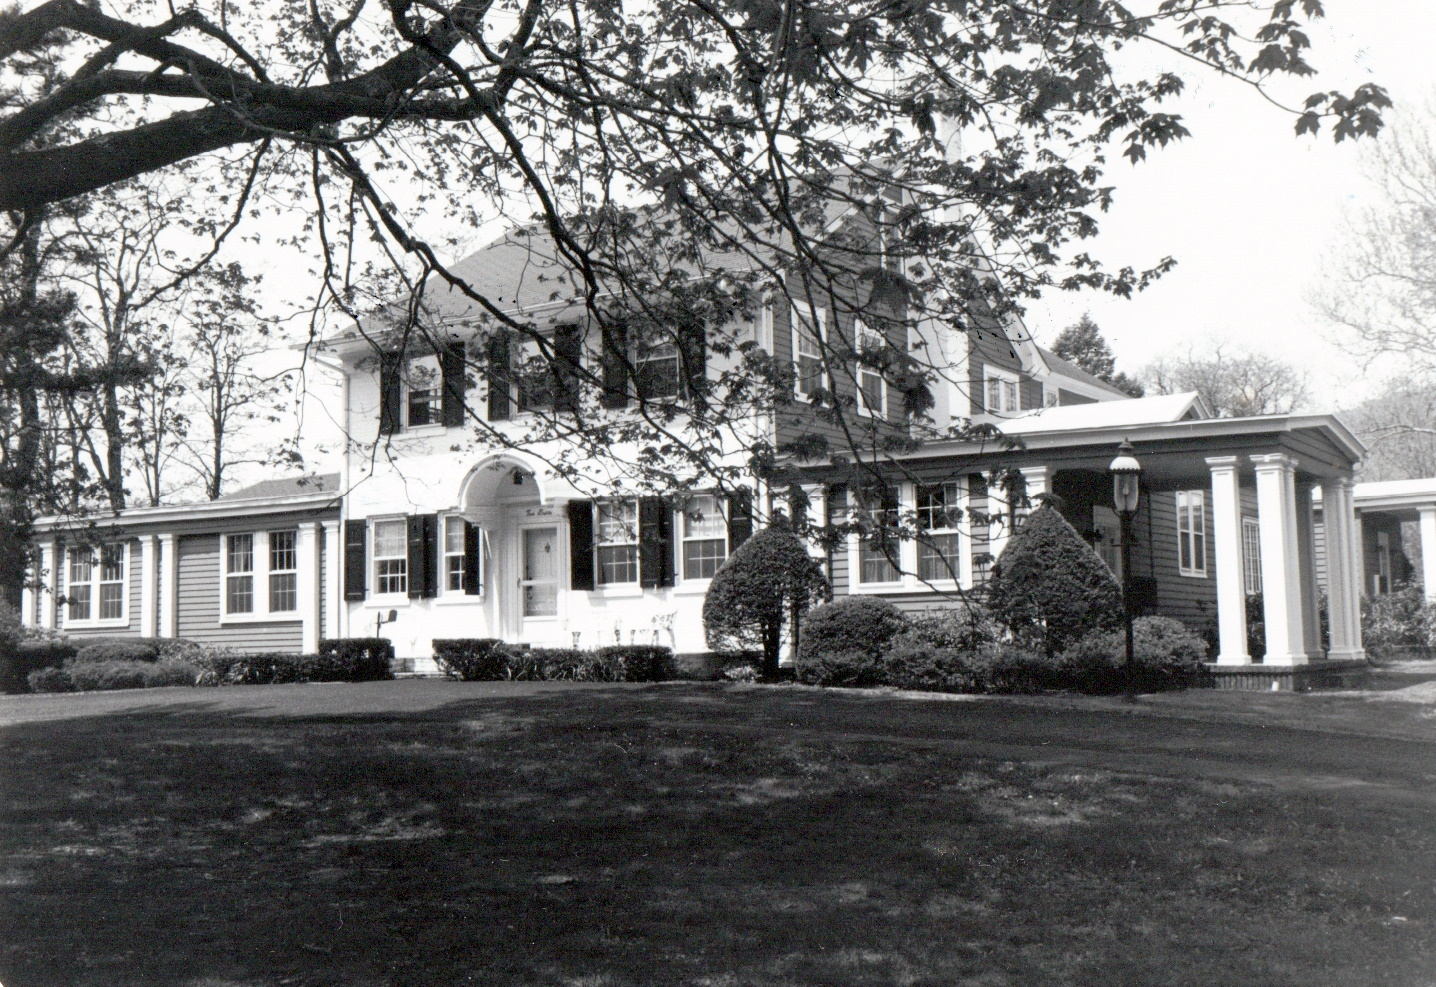 Black and white photograph of the Sheffield House from the street